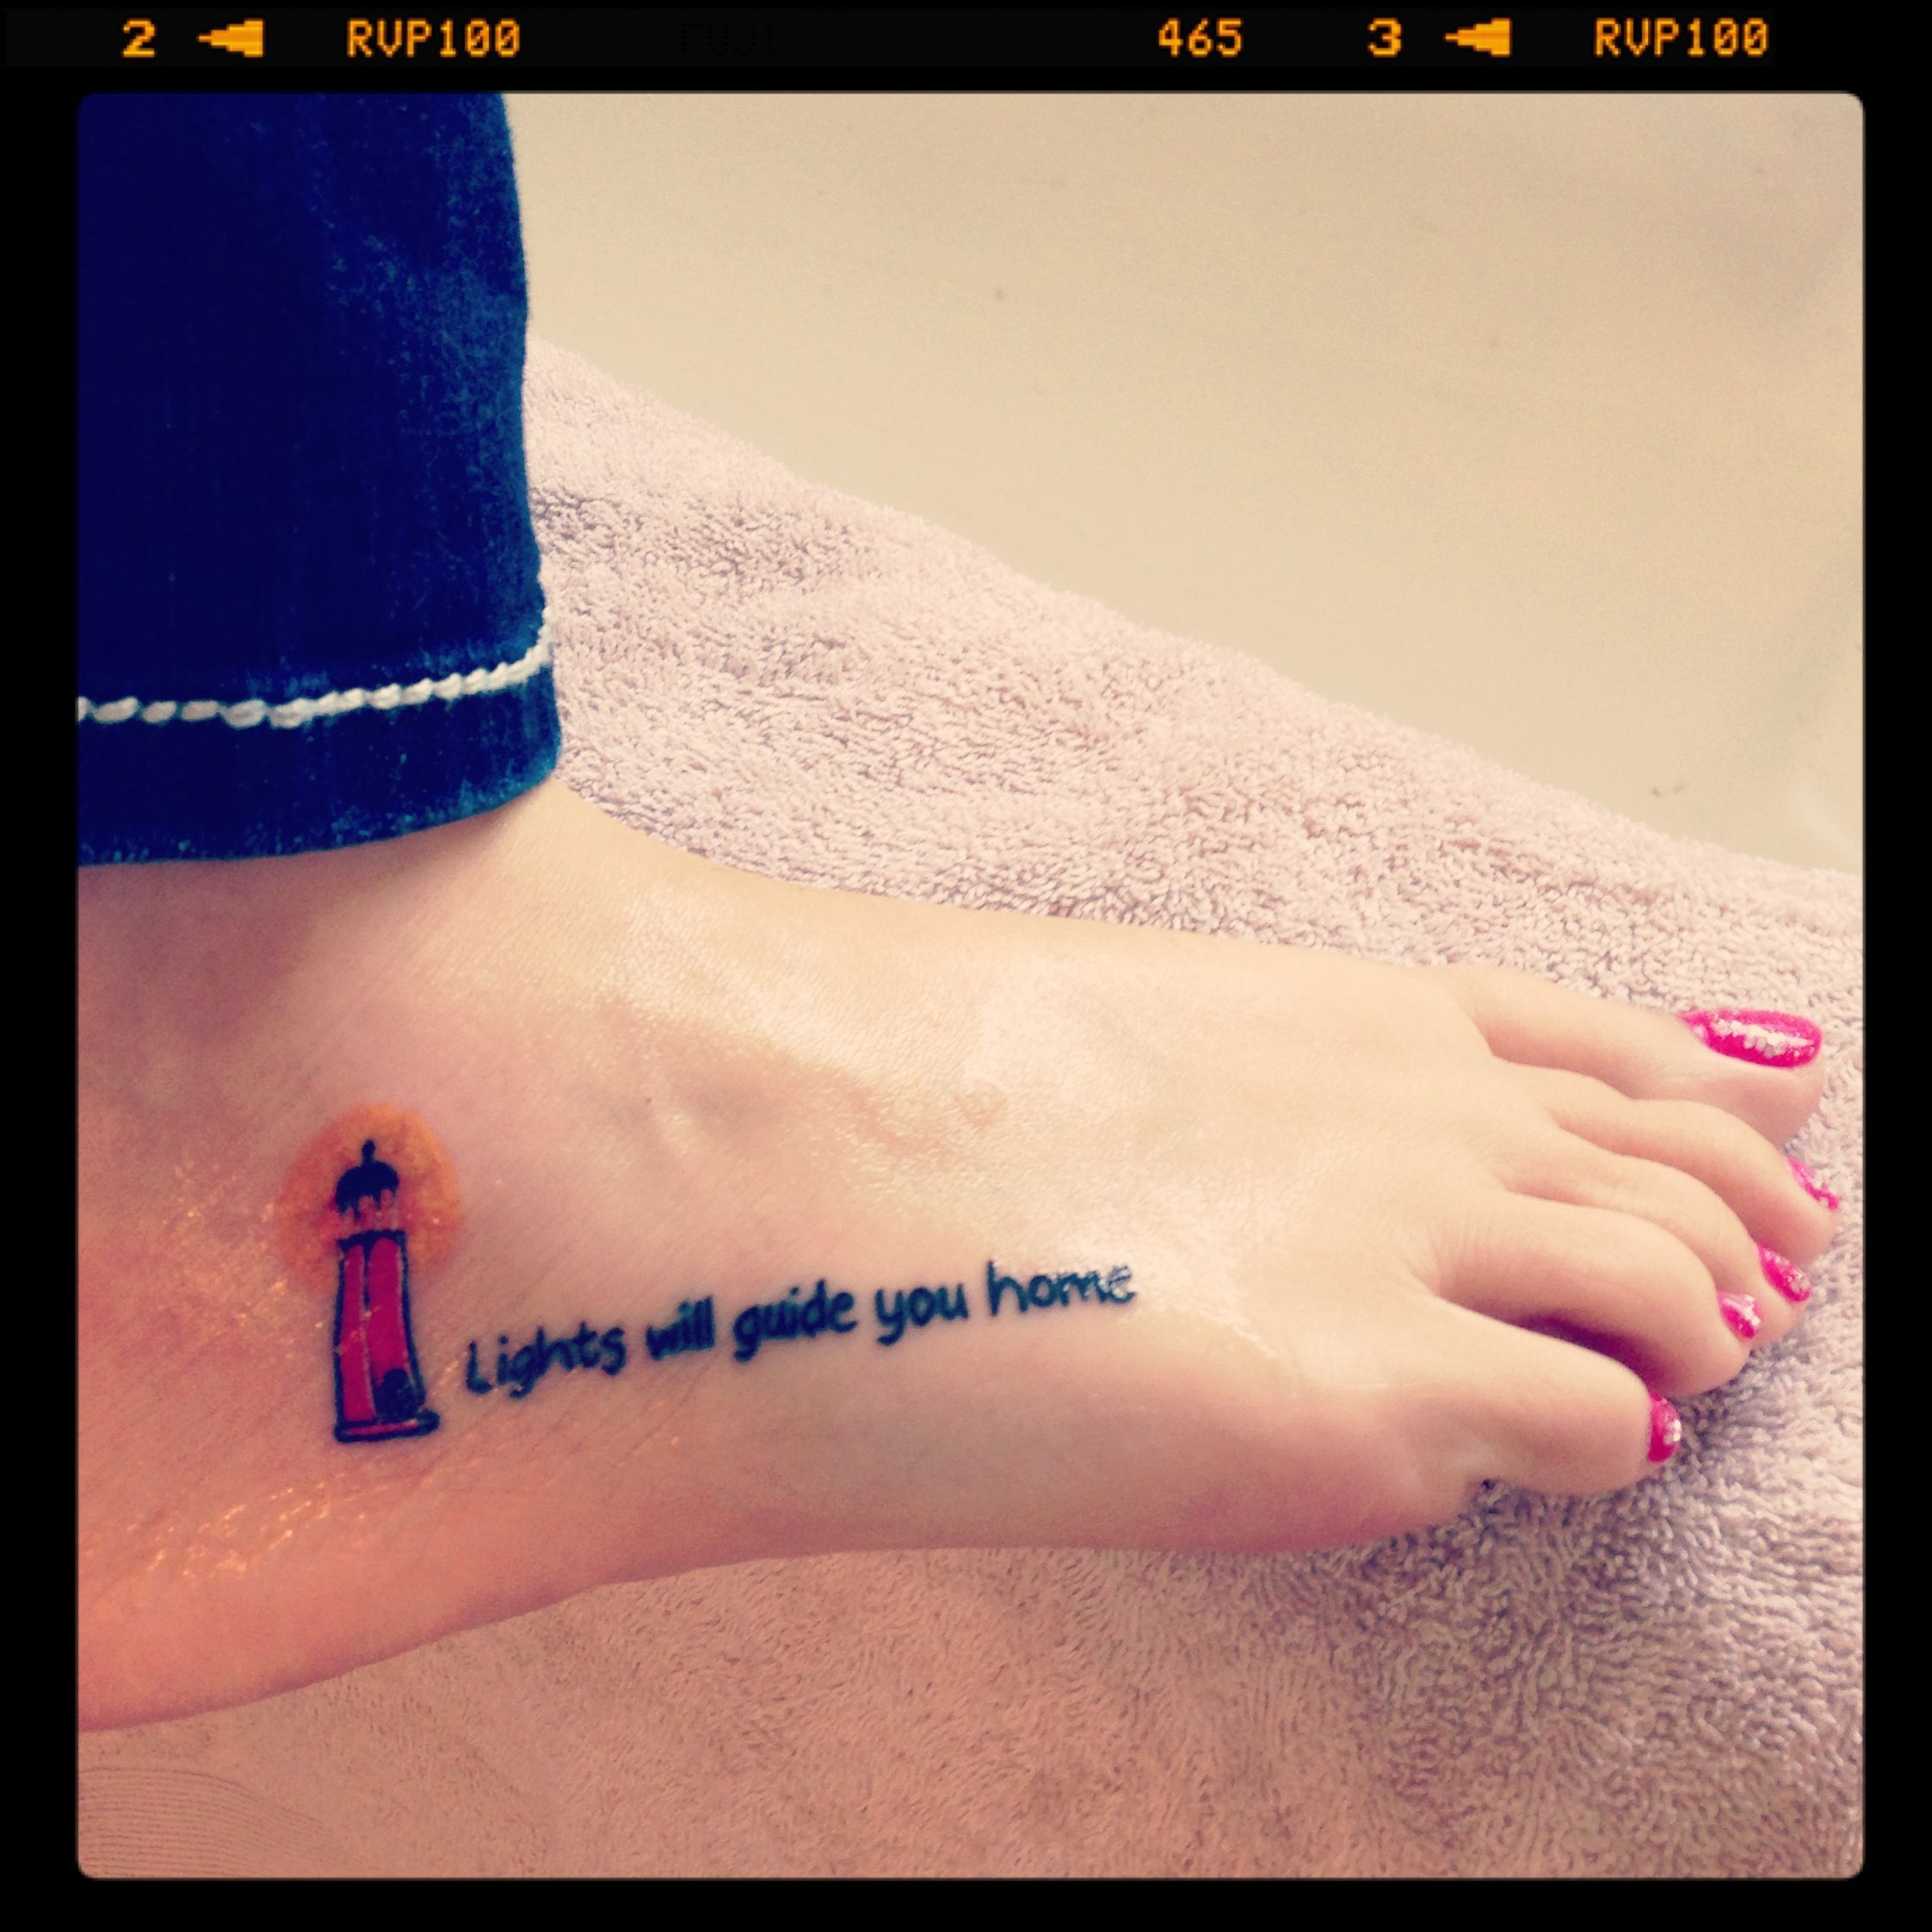 My newest tattoo. Lights will guide you home | Stuff | Tattoos, Feet ...